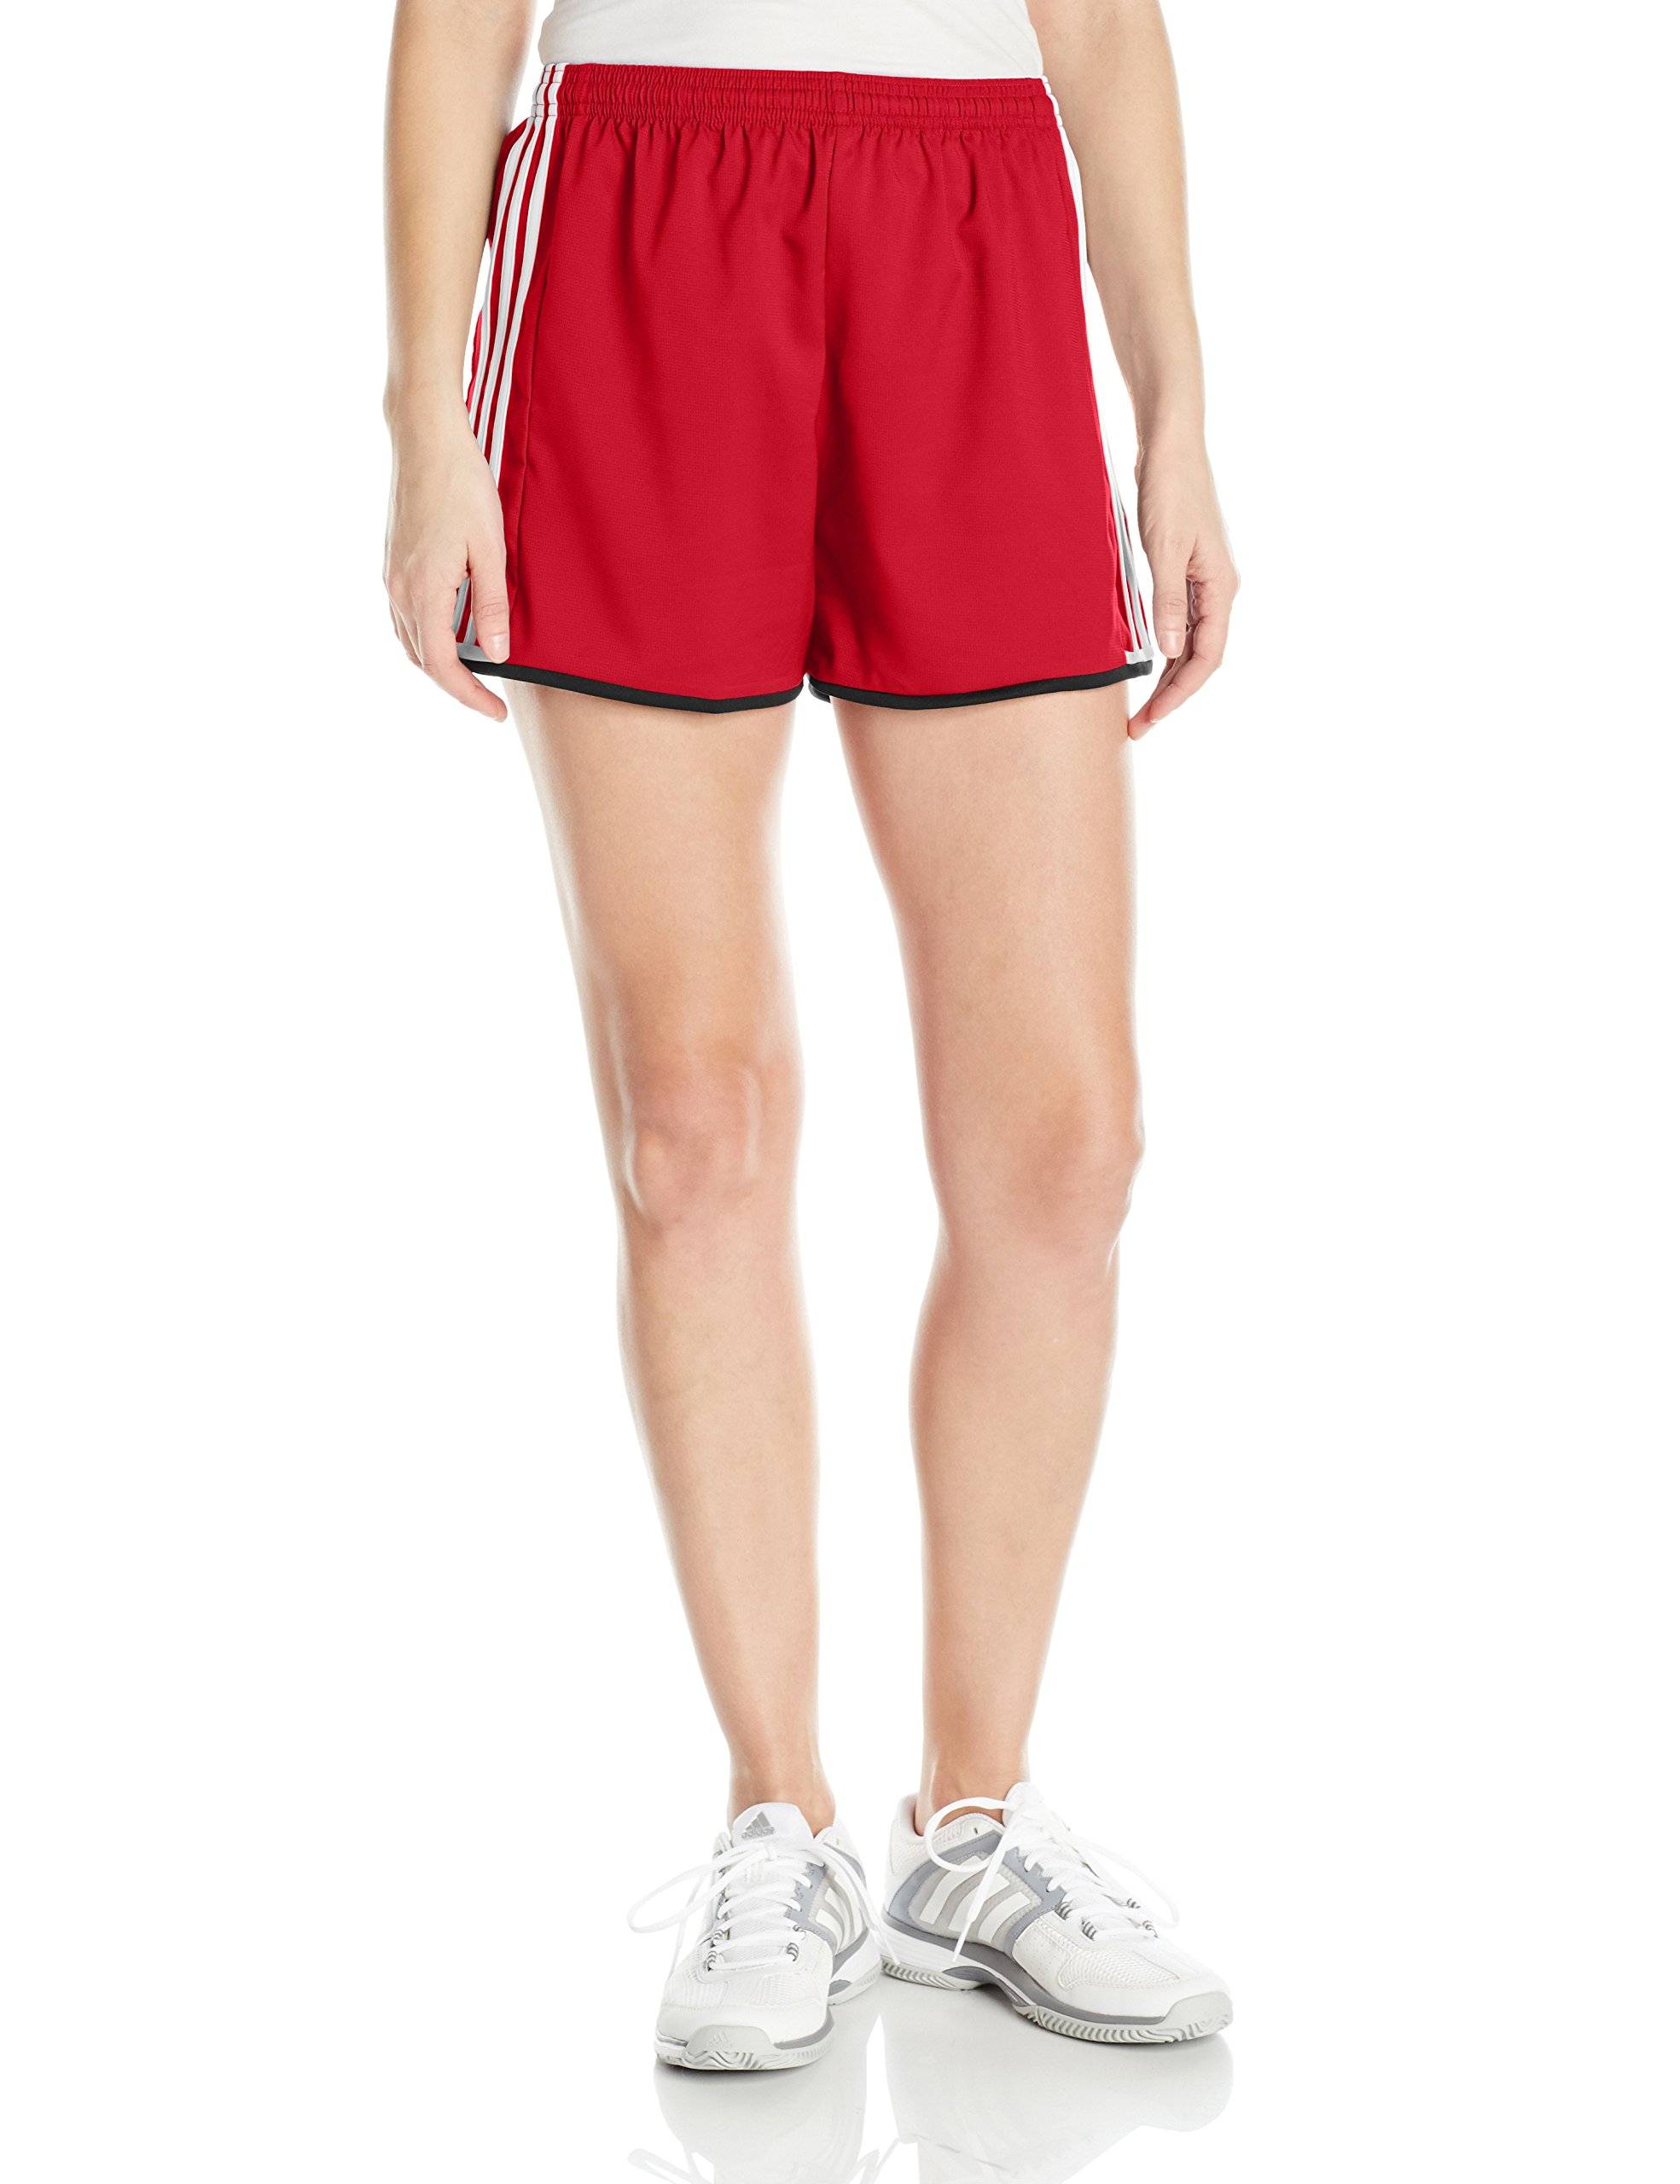 adidas Women's Soccer Condivo 16 Shorts, Power Red/White, X-Large by adidas